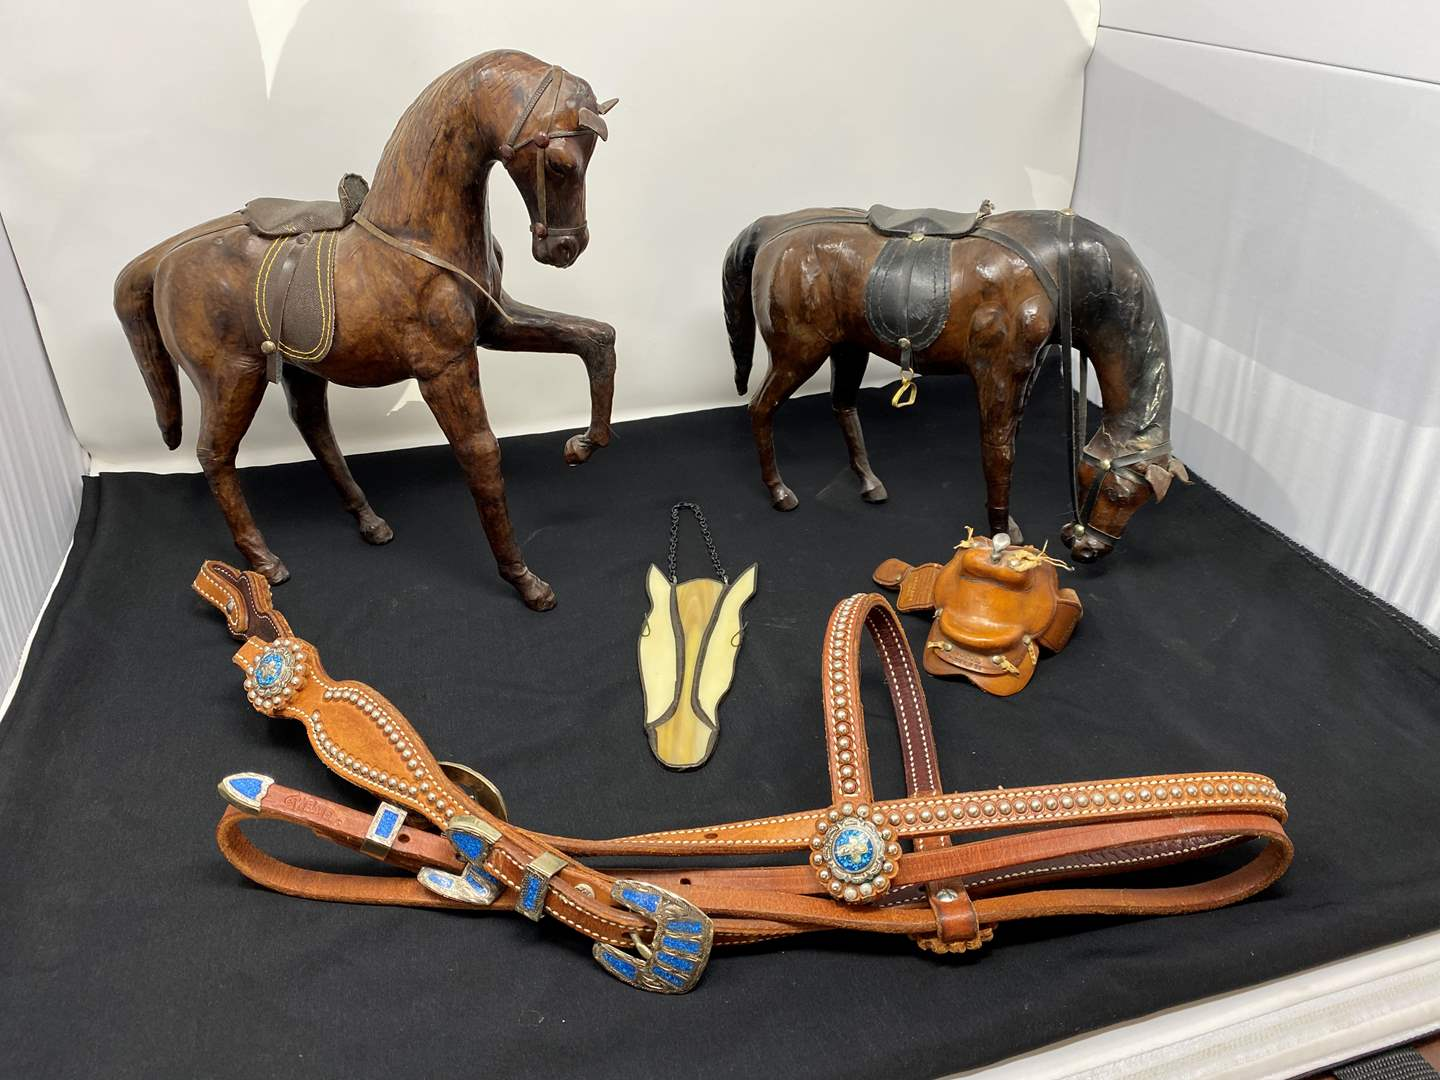 Lot # 3 - Two Leather Horses, New Leather Horse Reins, Small Leather Saddle, Stained Glass Horse Head. (main image)